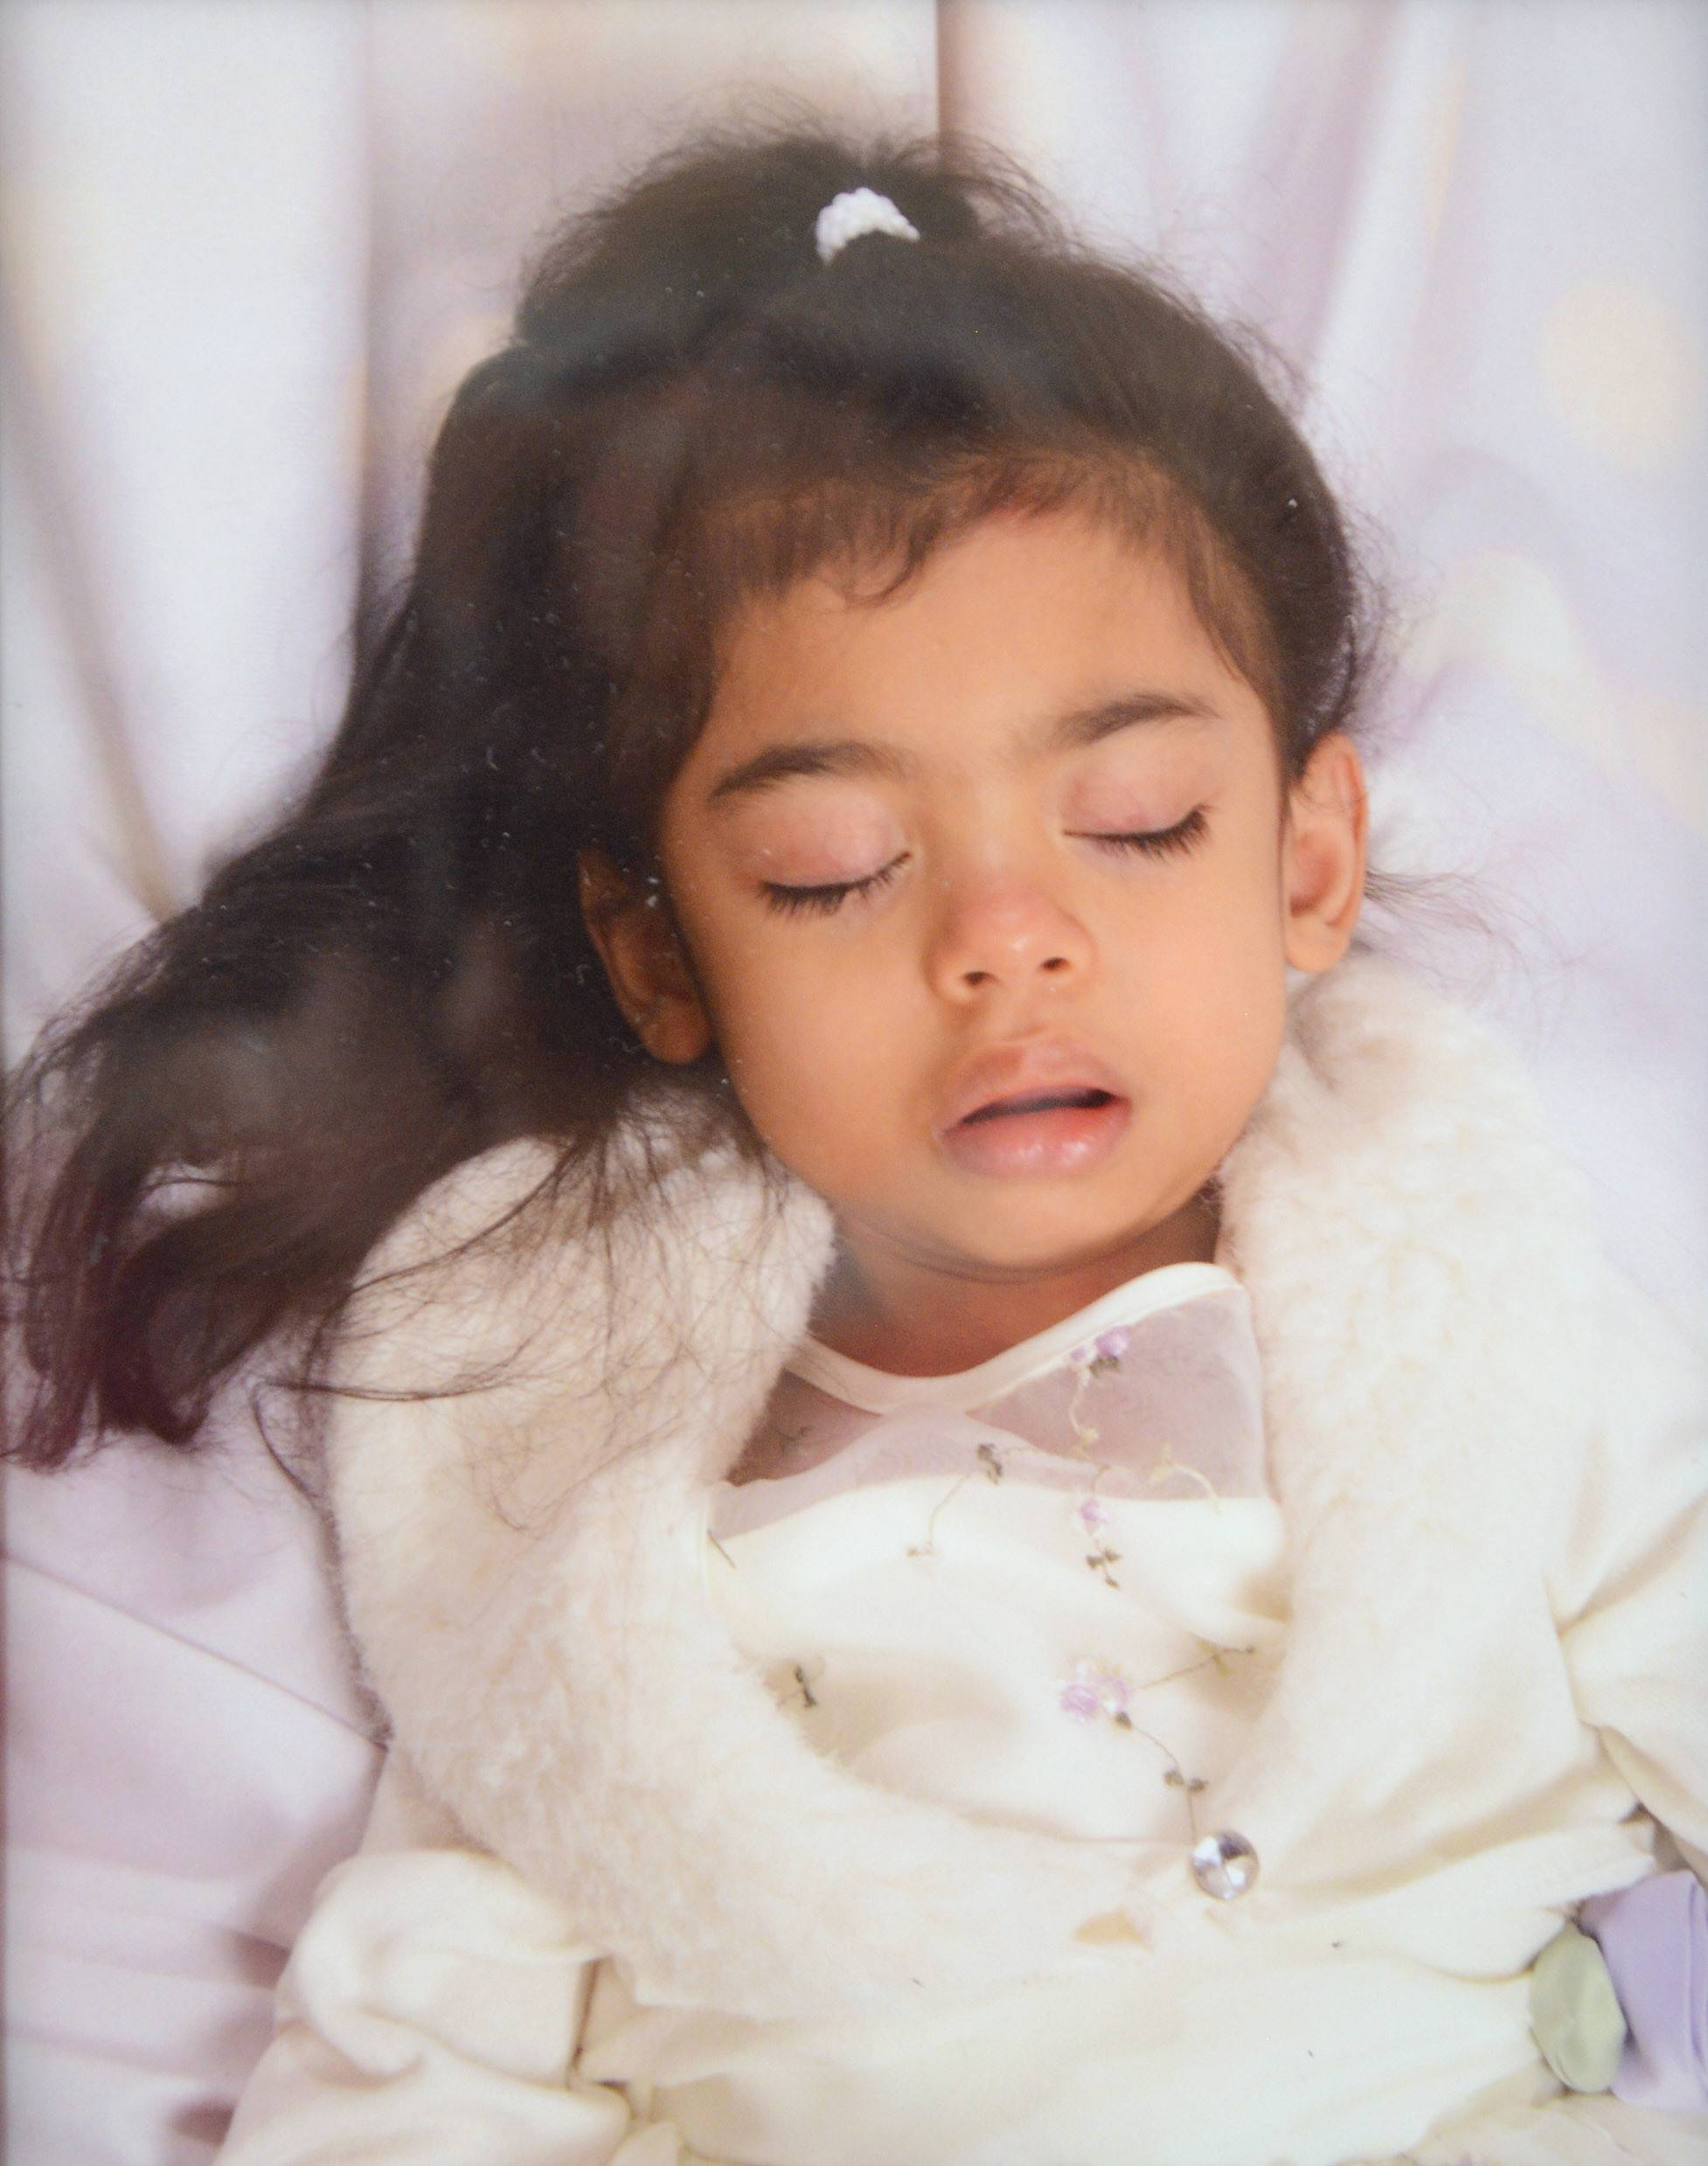 Joselyn Huerta in a 2008 photo at age 7. A genetic nerve disorder would take her life in 2013 at age 12.